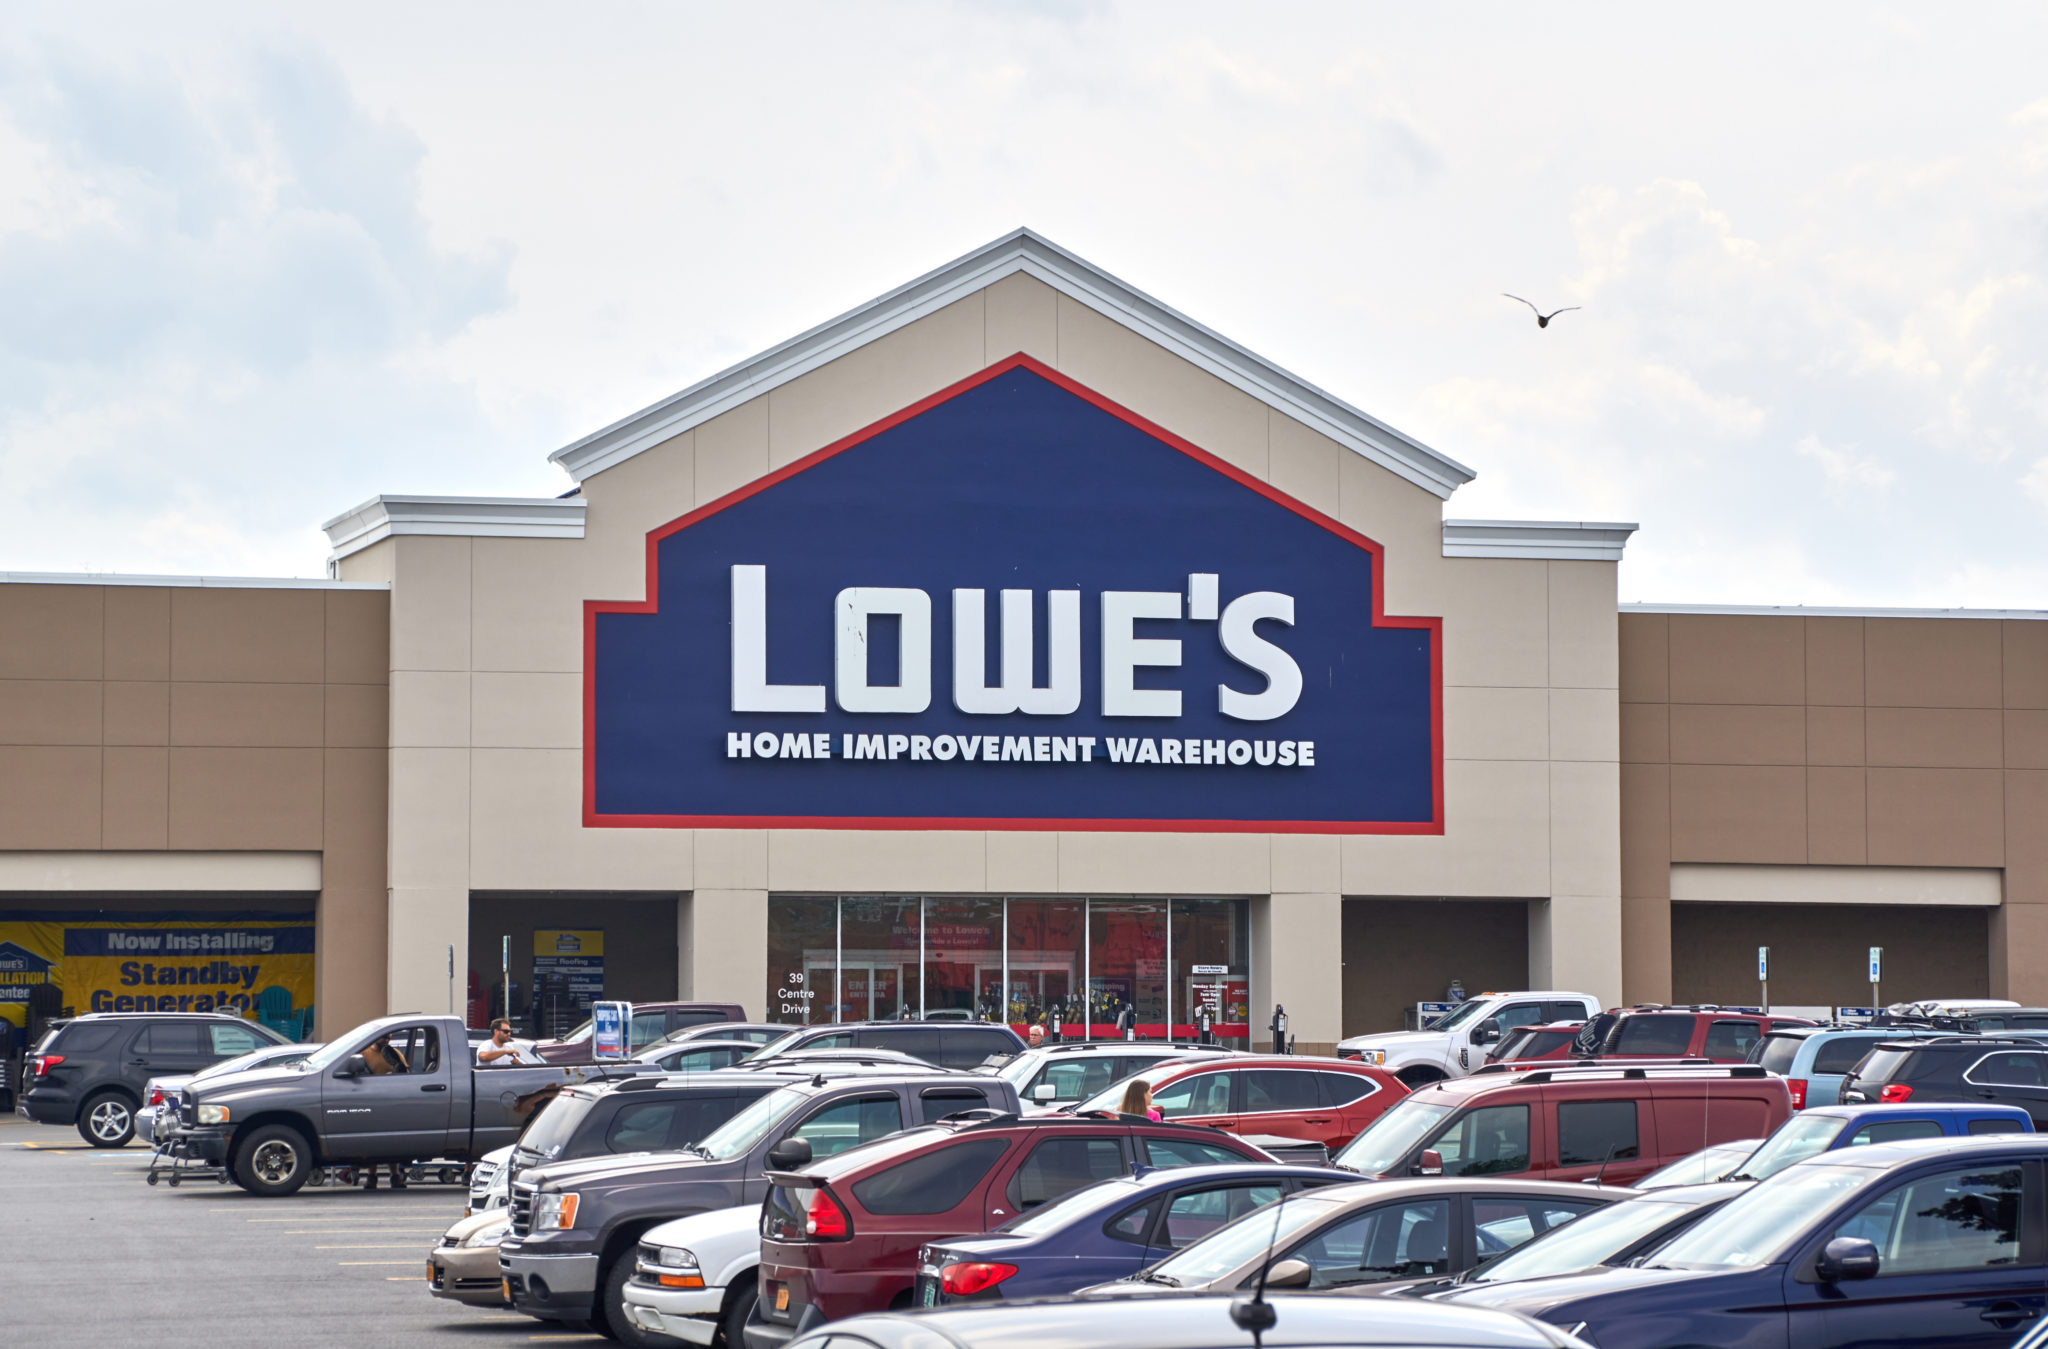 Lowes is a big box stores have plenty of mulch, shovels, rakes and lots of landscape supplies, grass, etc.